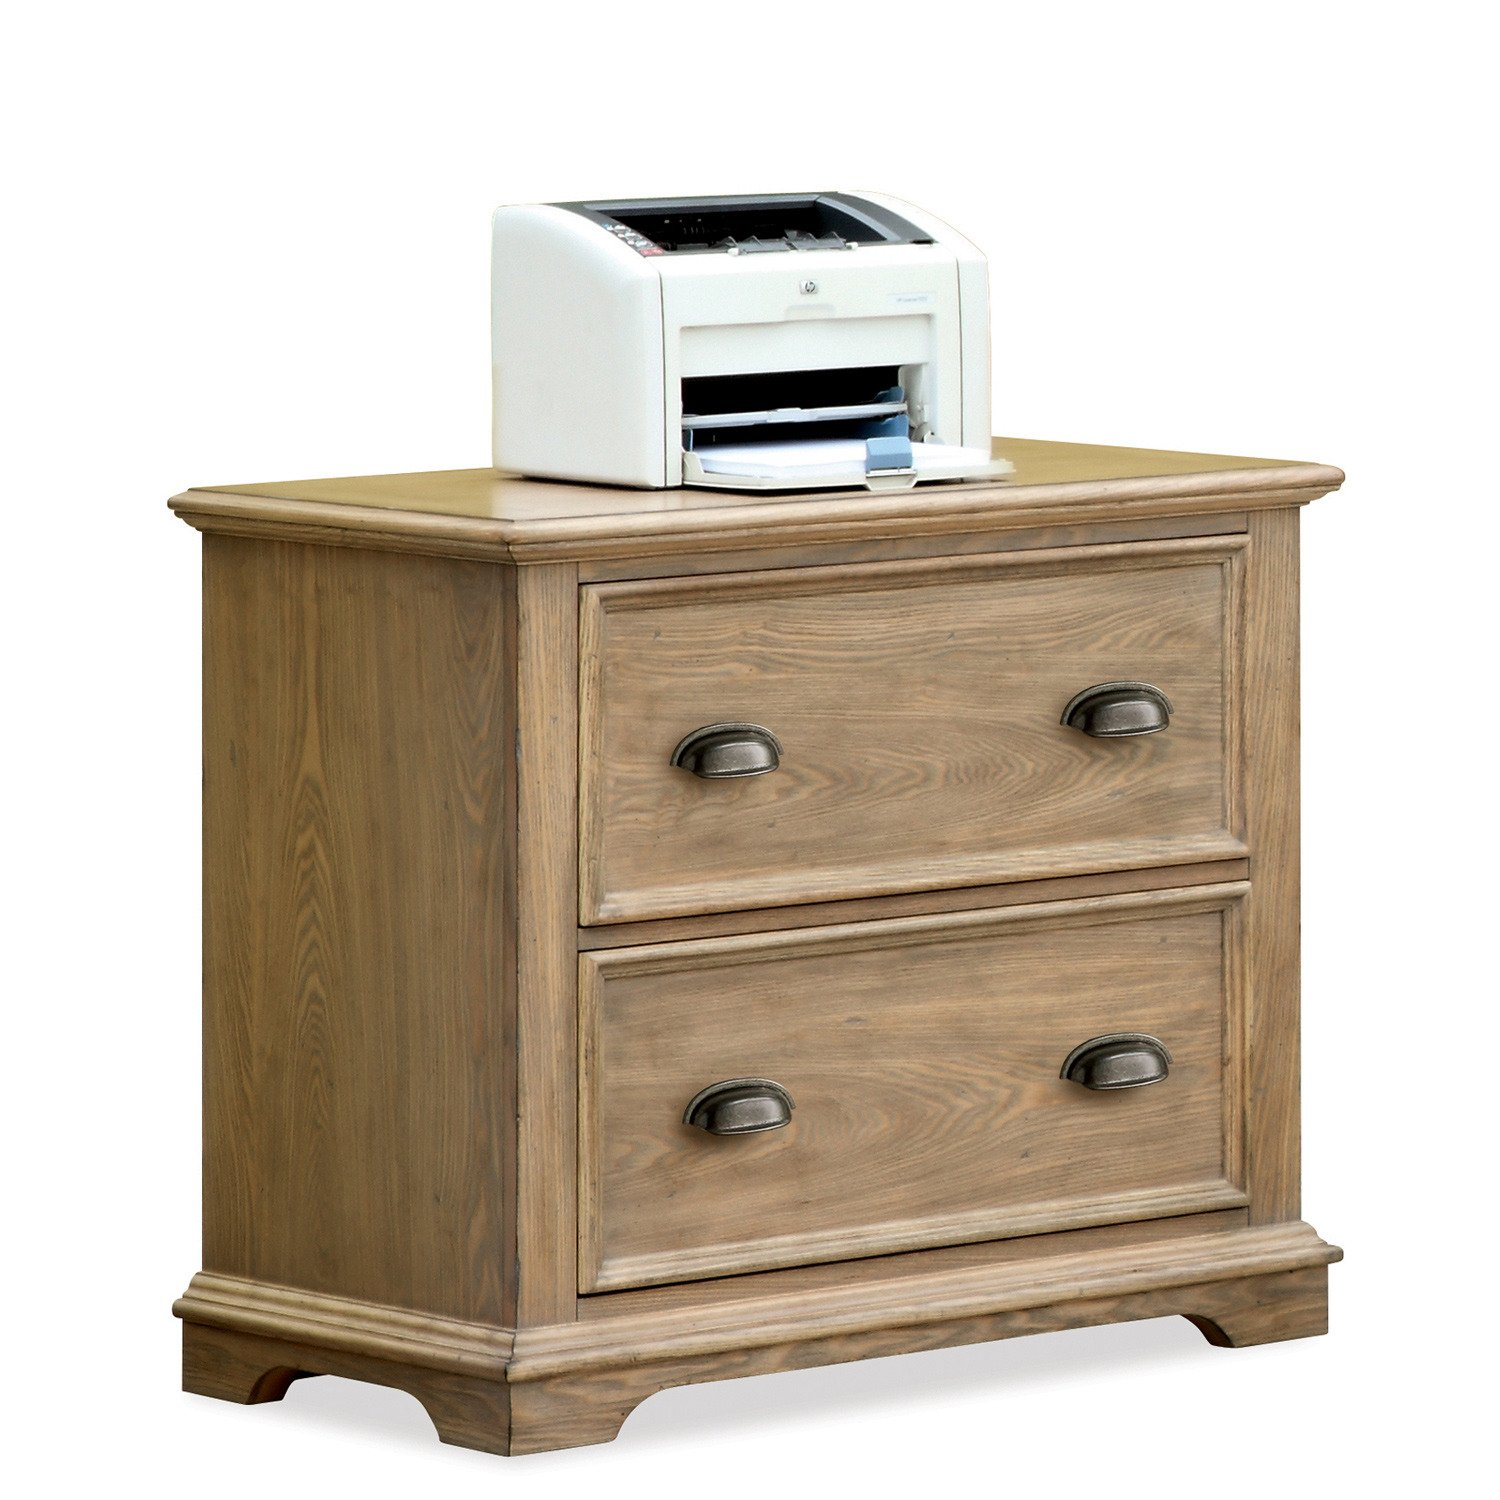 Amazon.com Riverside Furniture Coventry Lateral File Cabinet (Weathered Driftwood) Home u0026 Kitchen  sc 1 st  Amazon.com & Amazon.com: Riverside Furniture Coventry Lateral File Cabinet ...